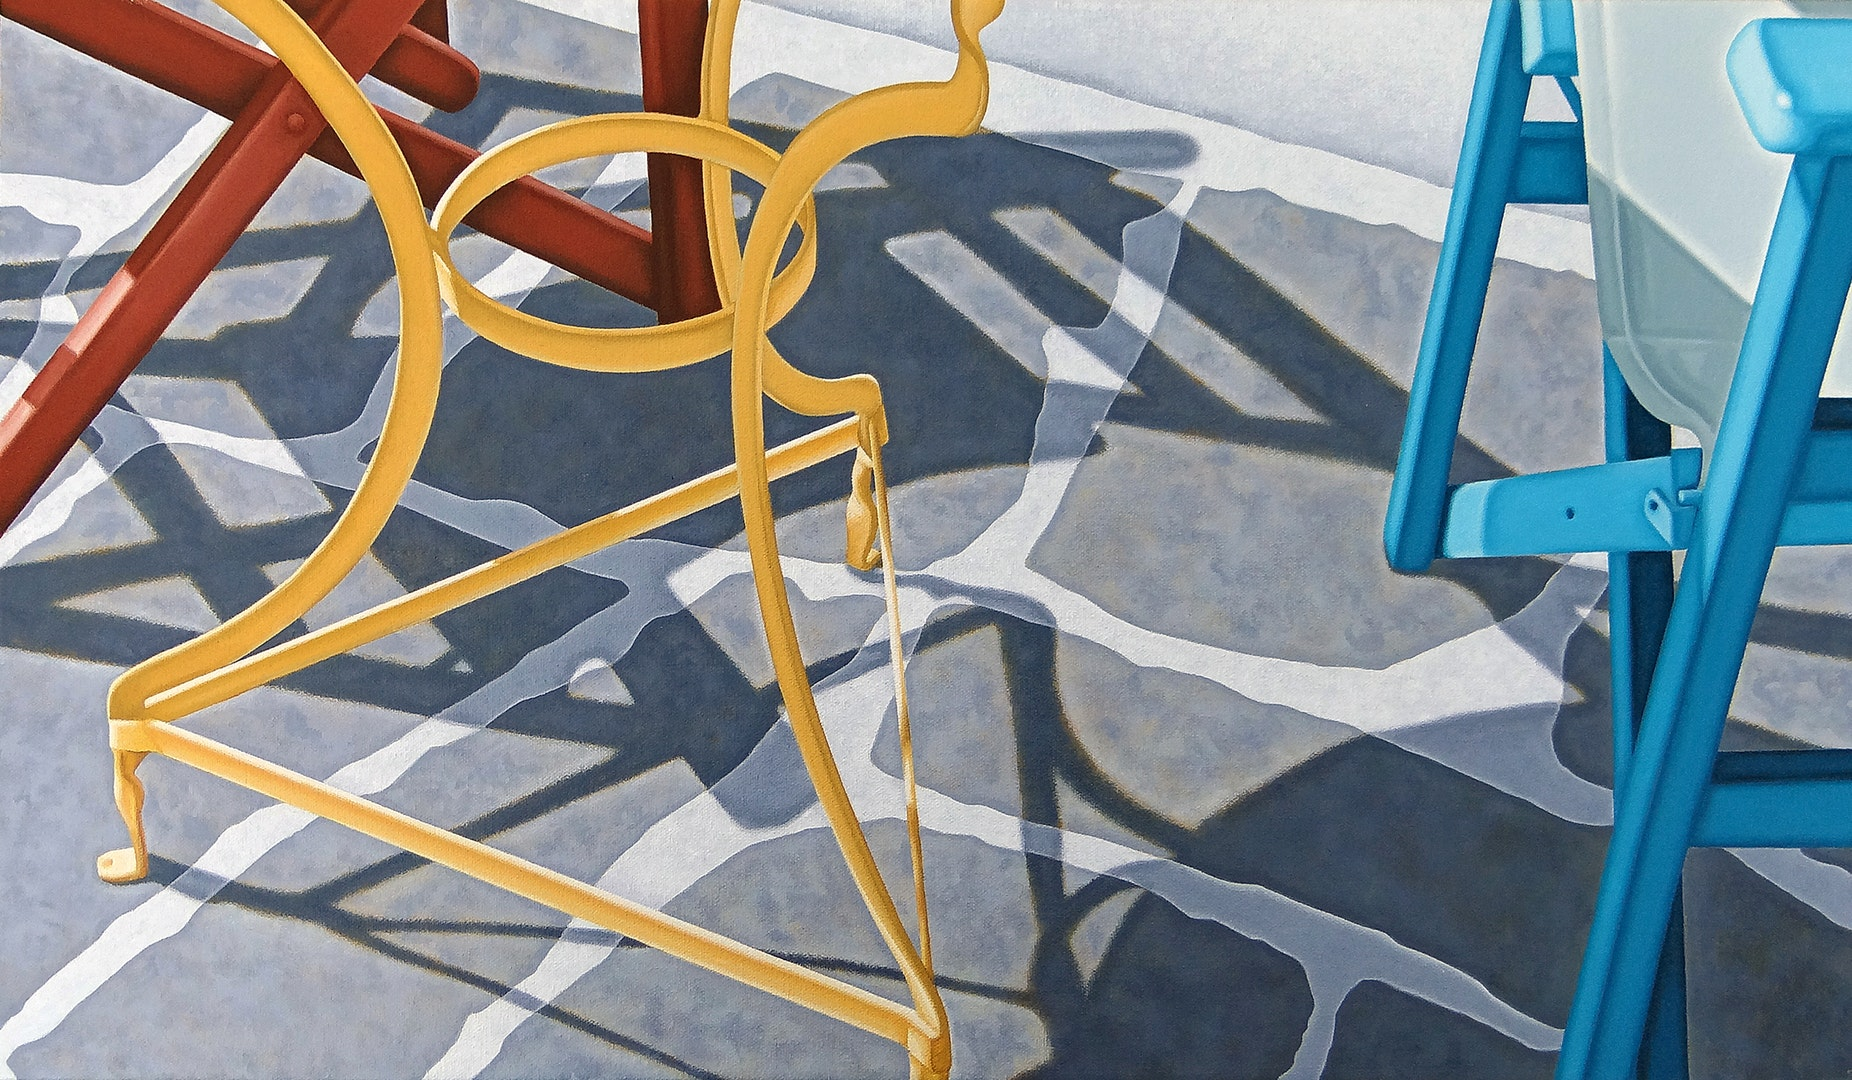 'Table and Two Chairs', Nicholas Harris, Acrylic on canvas, 35 x 61 x 2 cm